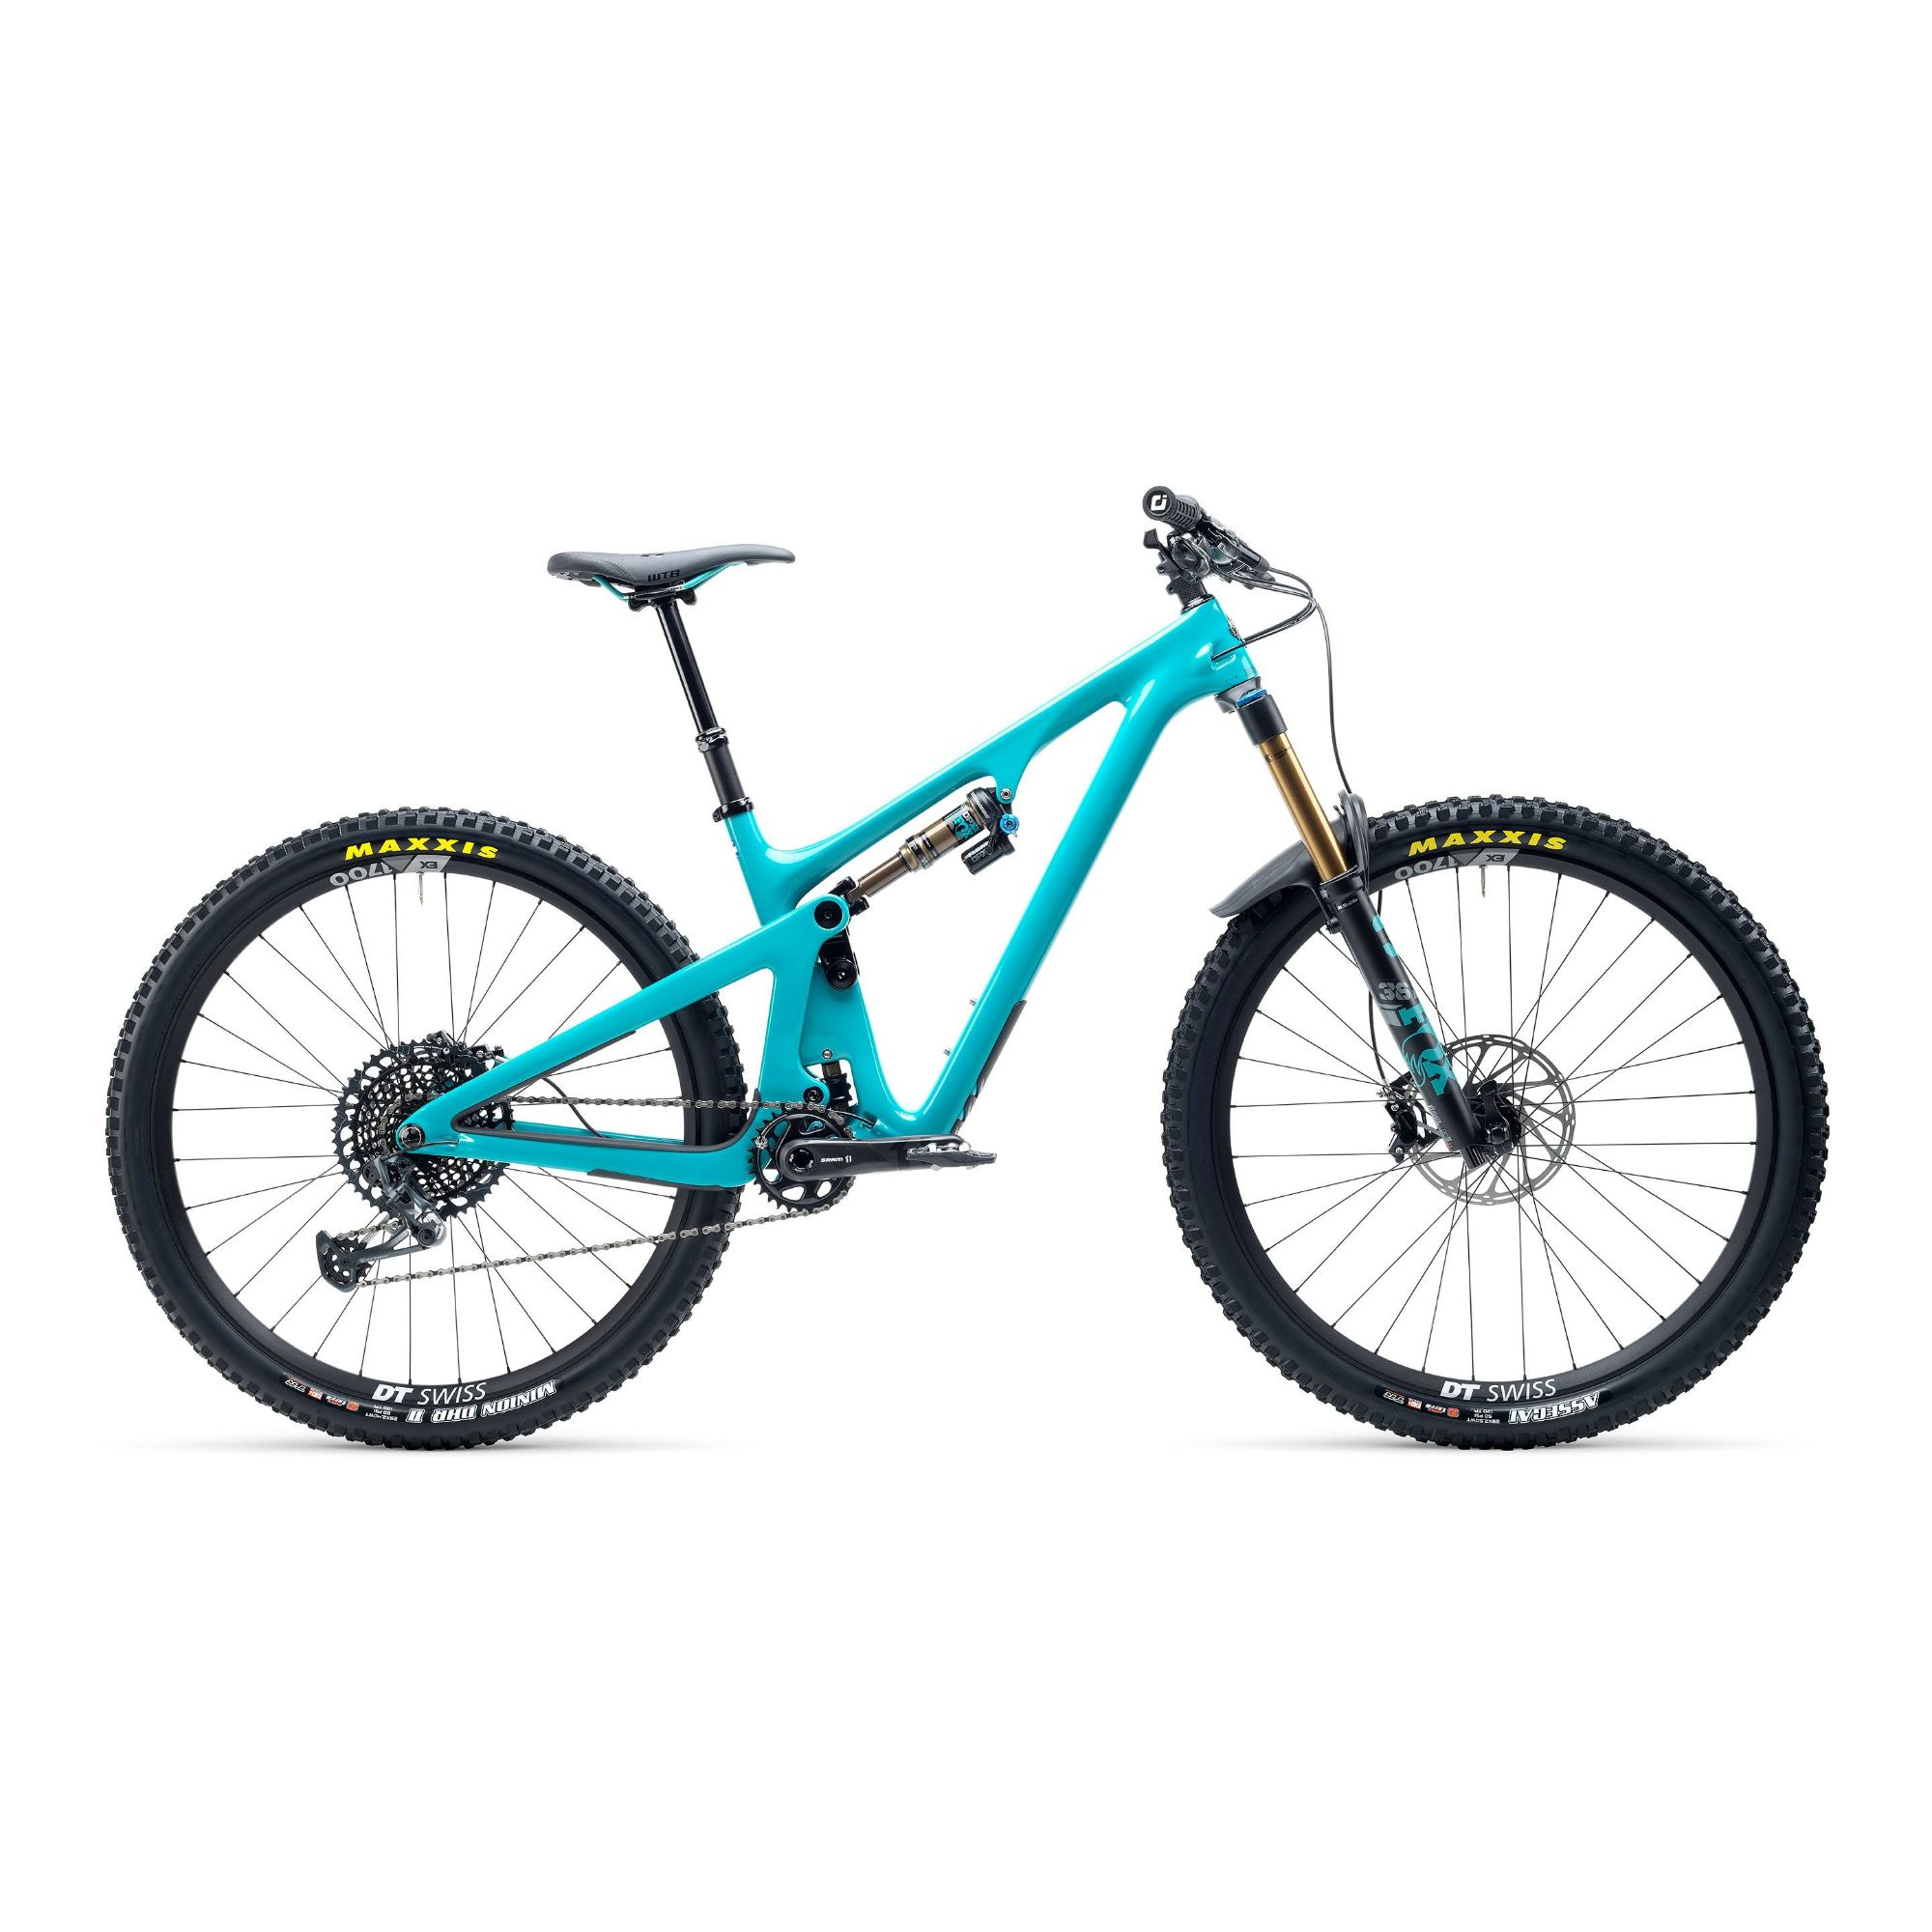 Yeti SB130 TSeries XO1 Lunchride 29er Carbon Mountain Bike 2021 Turq